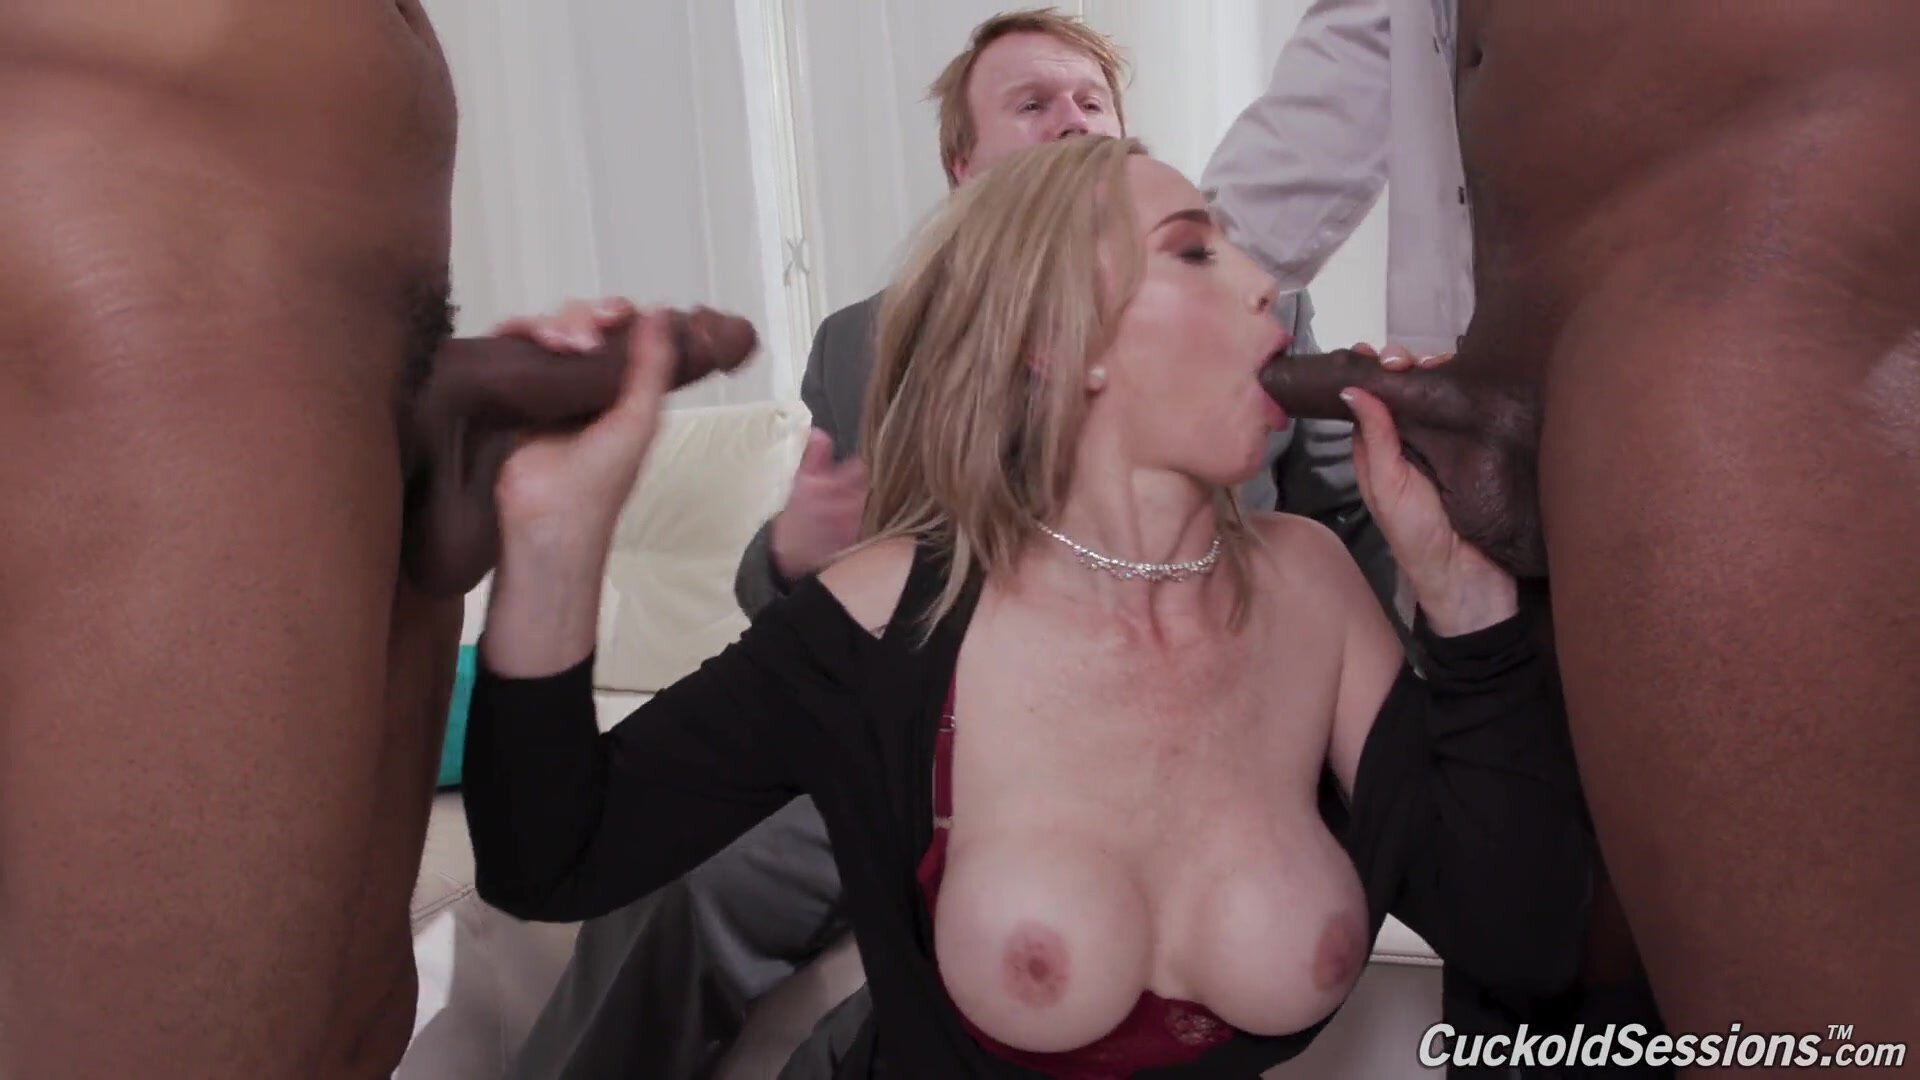 Guy Watches His Wife In Gang Bang Action - Lilly James